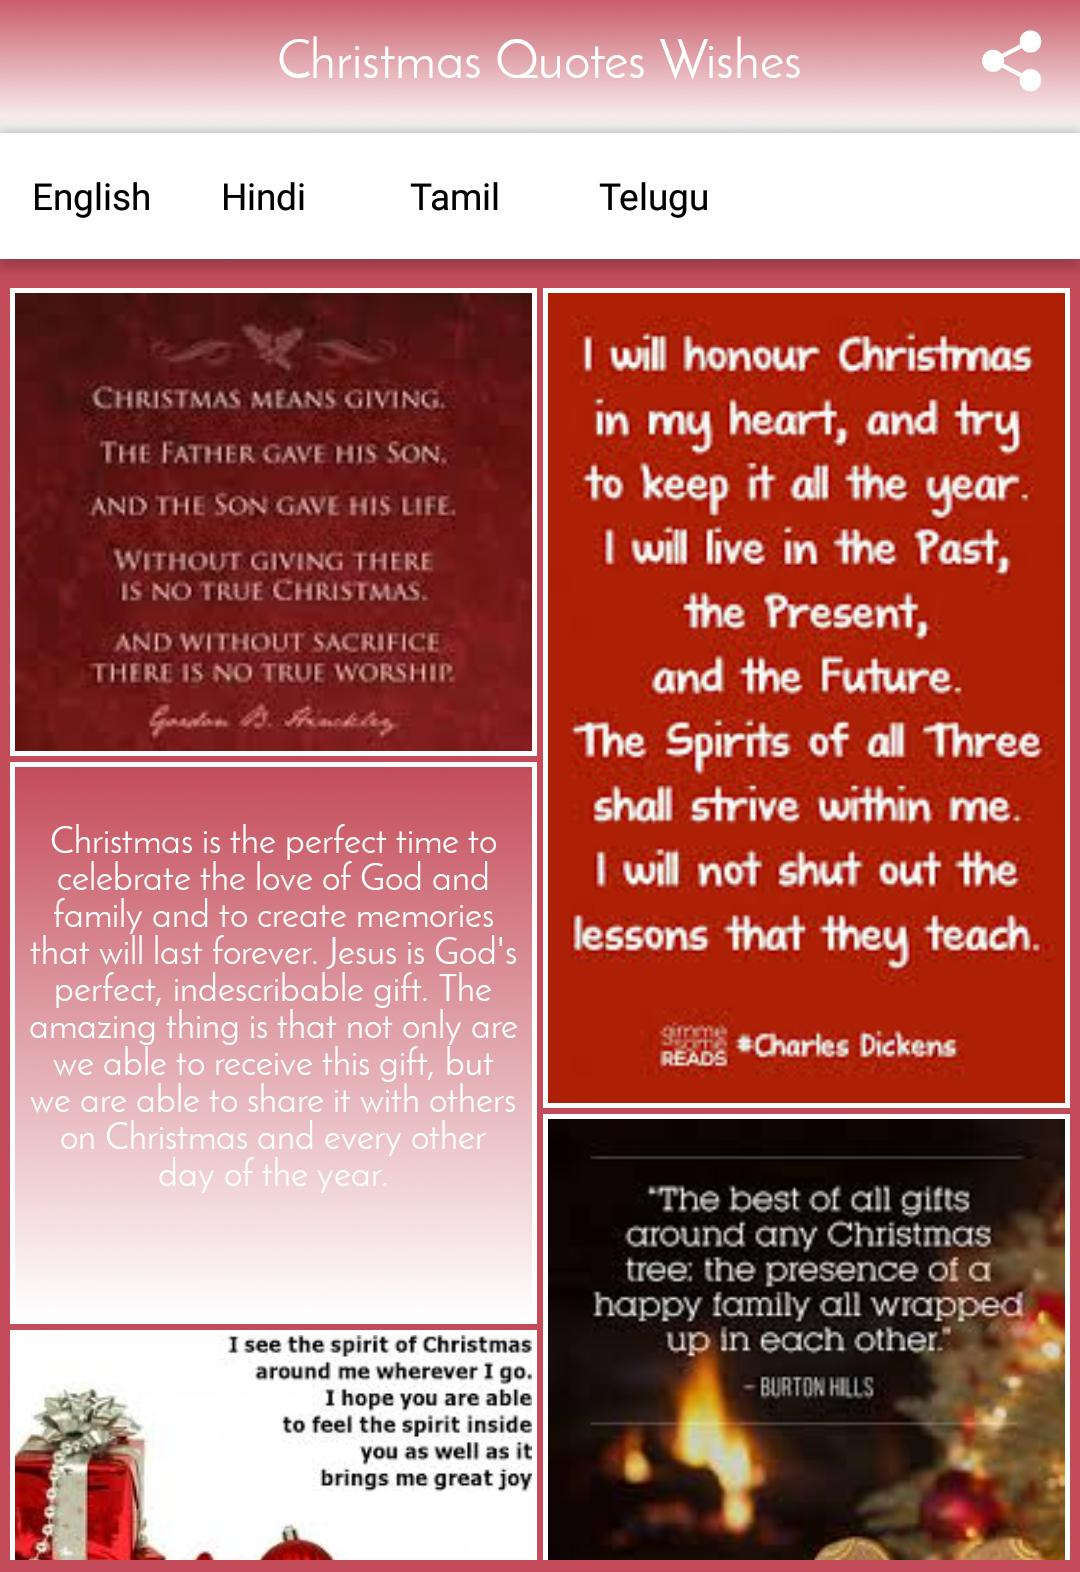 Christmas Quotes Wishes for Android - APK Download